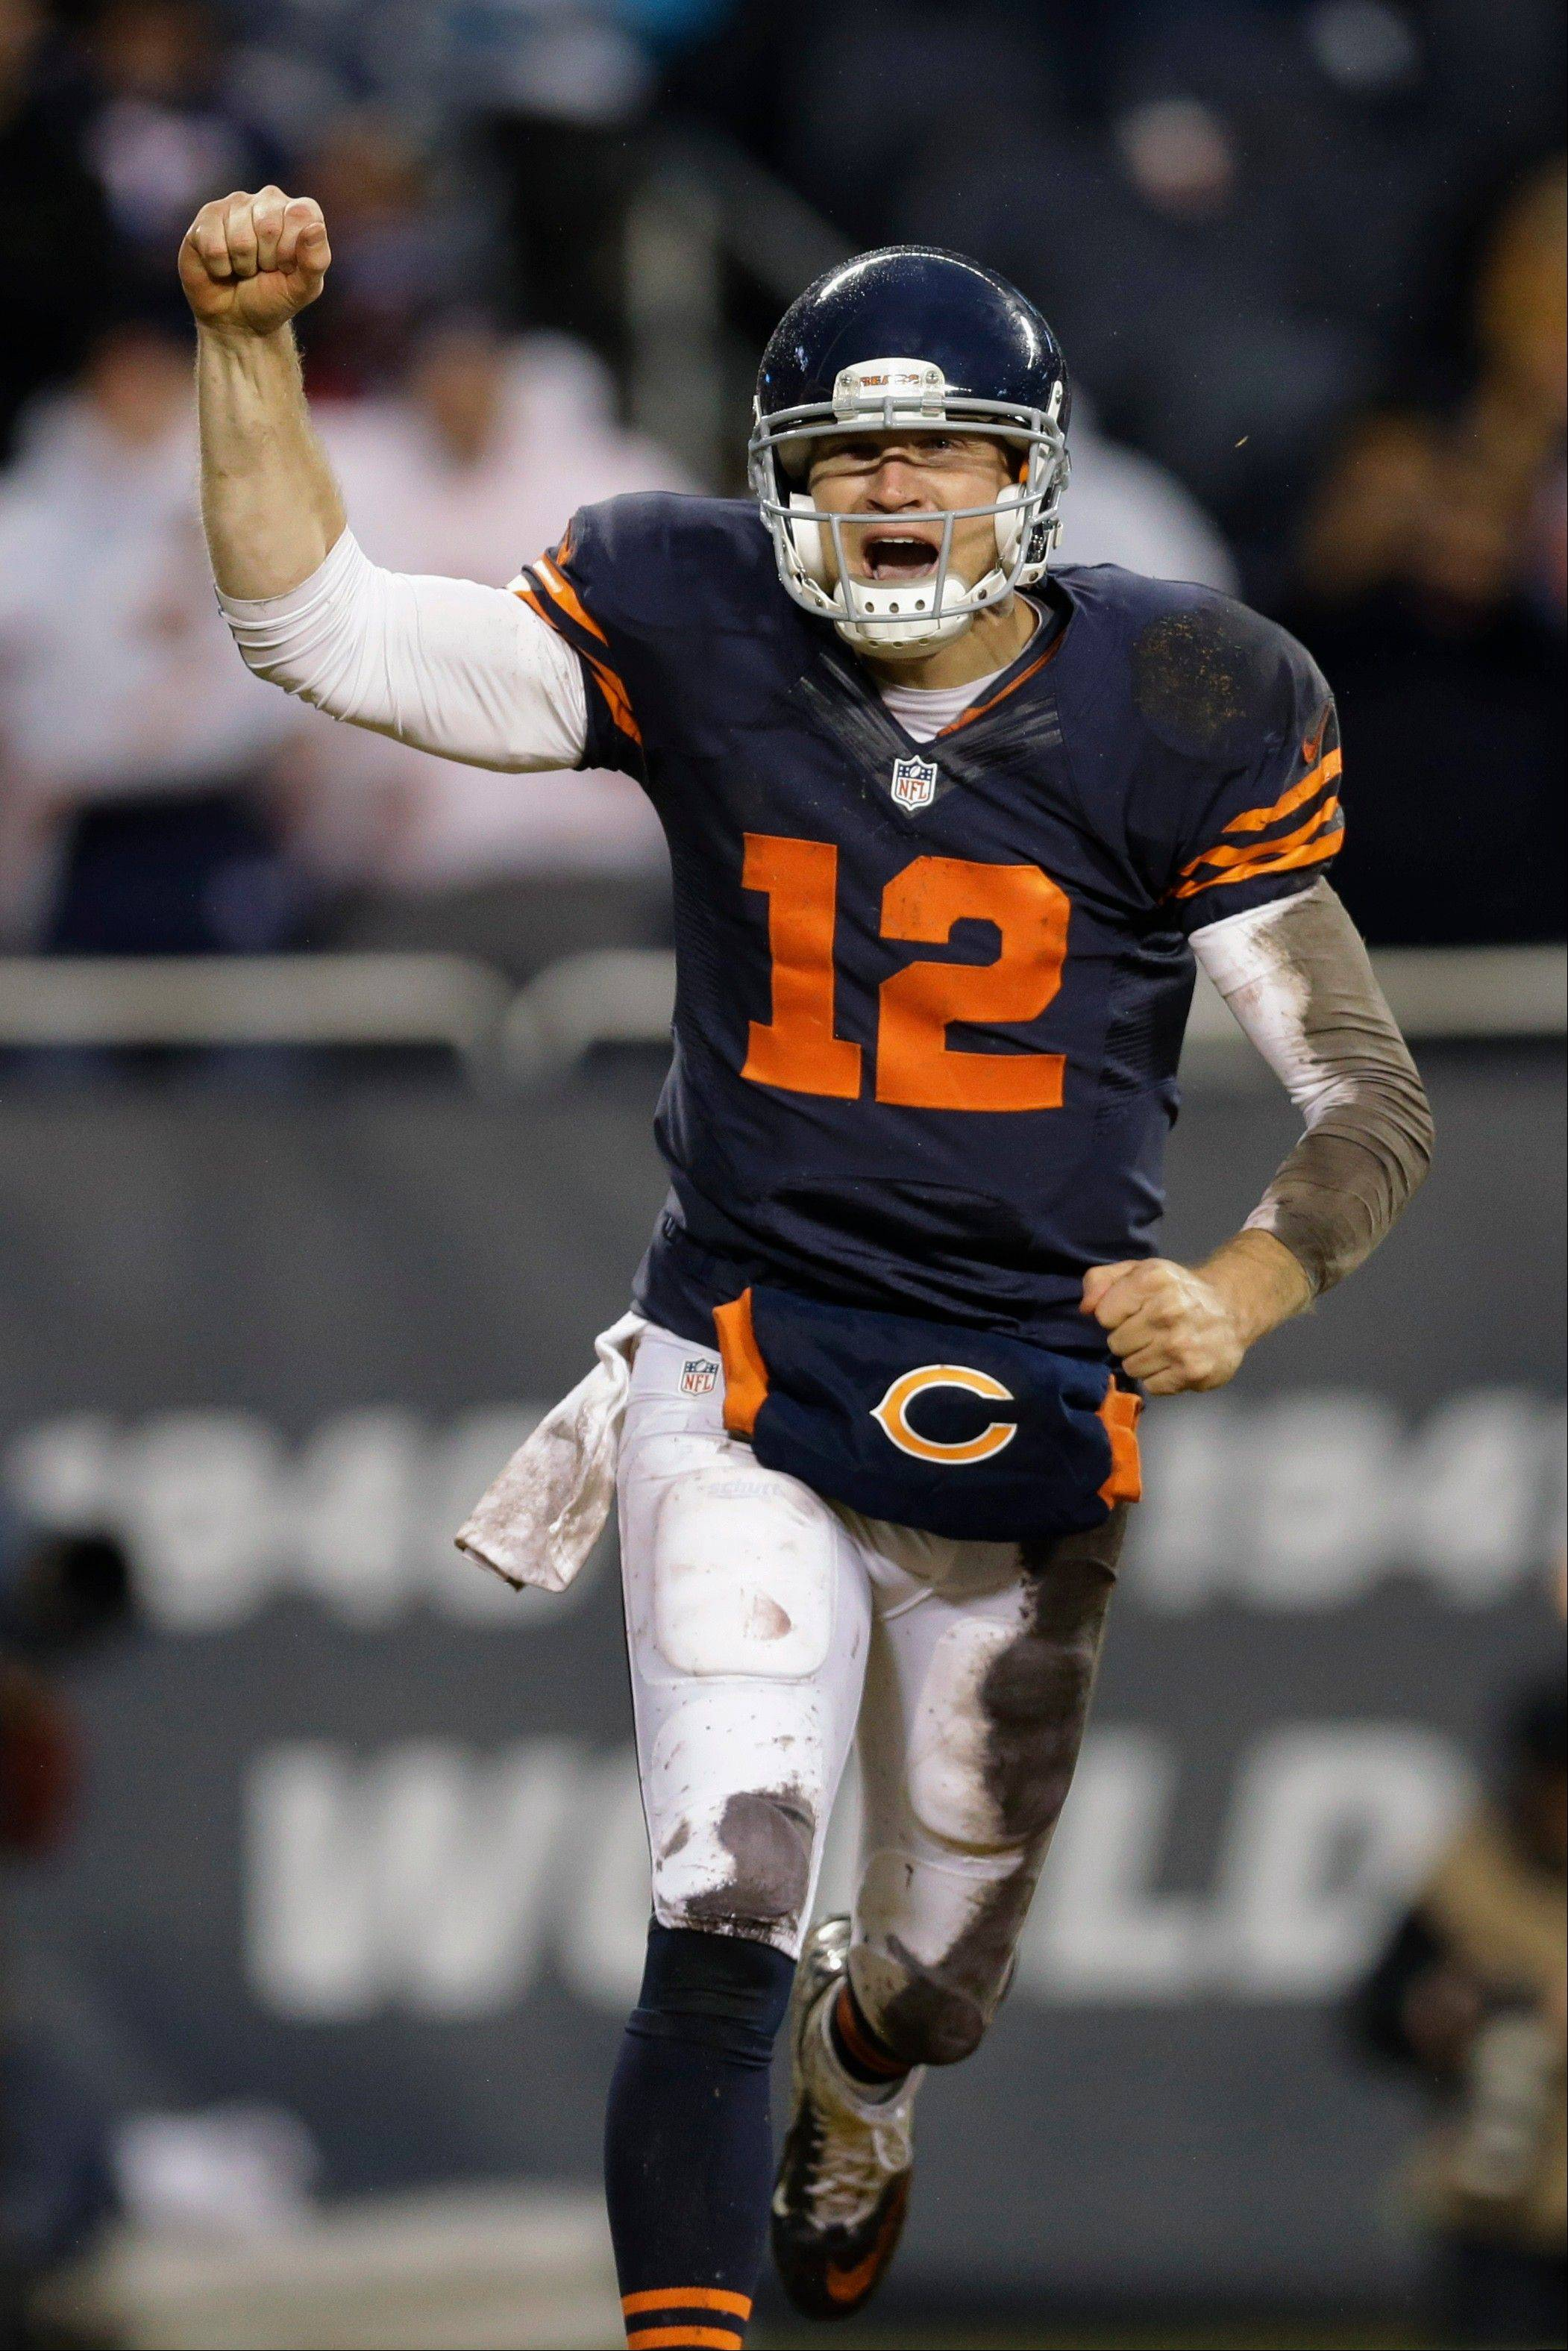 Quarterback Josh McCown will have so much more to work with Sunday than he did in his first start for the Bears, which also was at Minnesota almost two years ago.